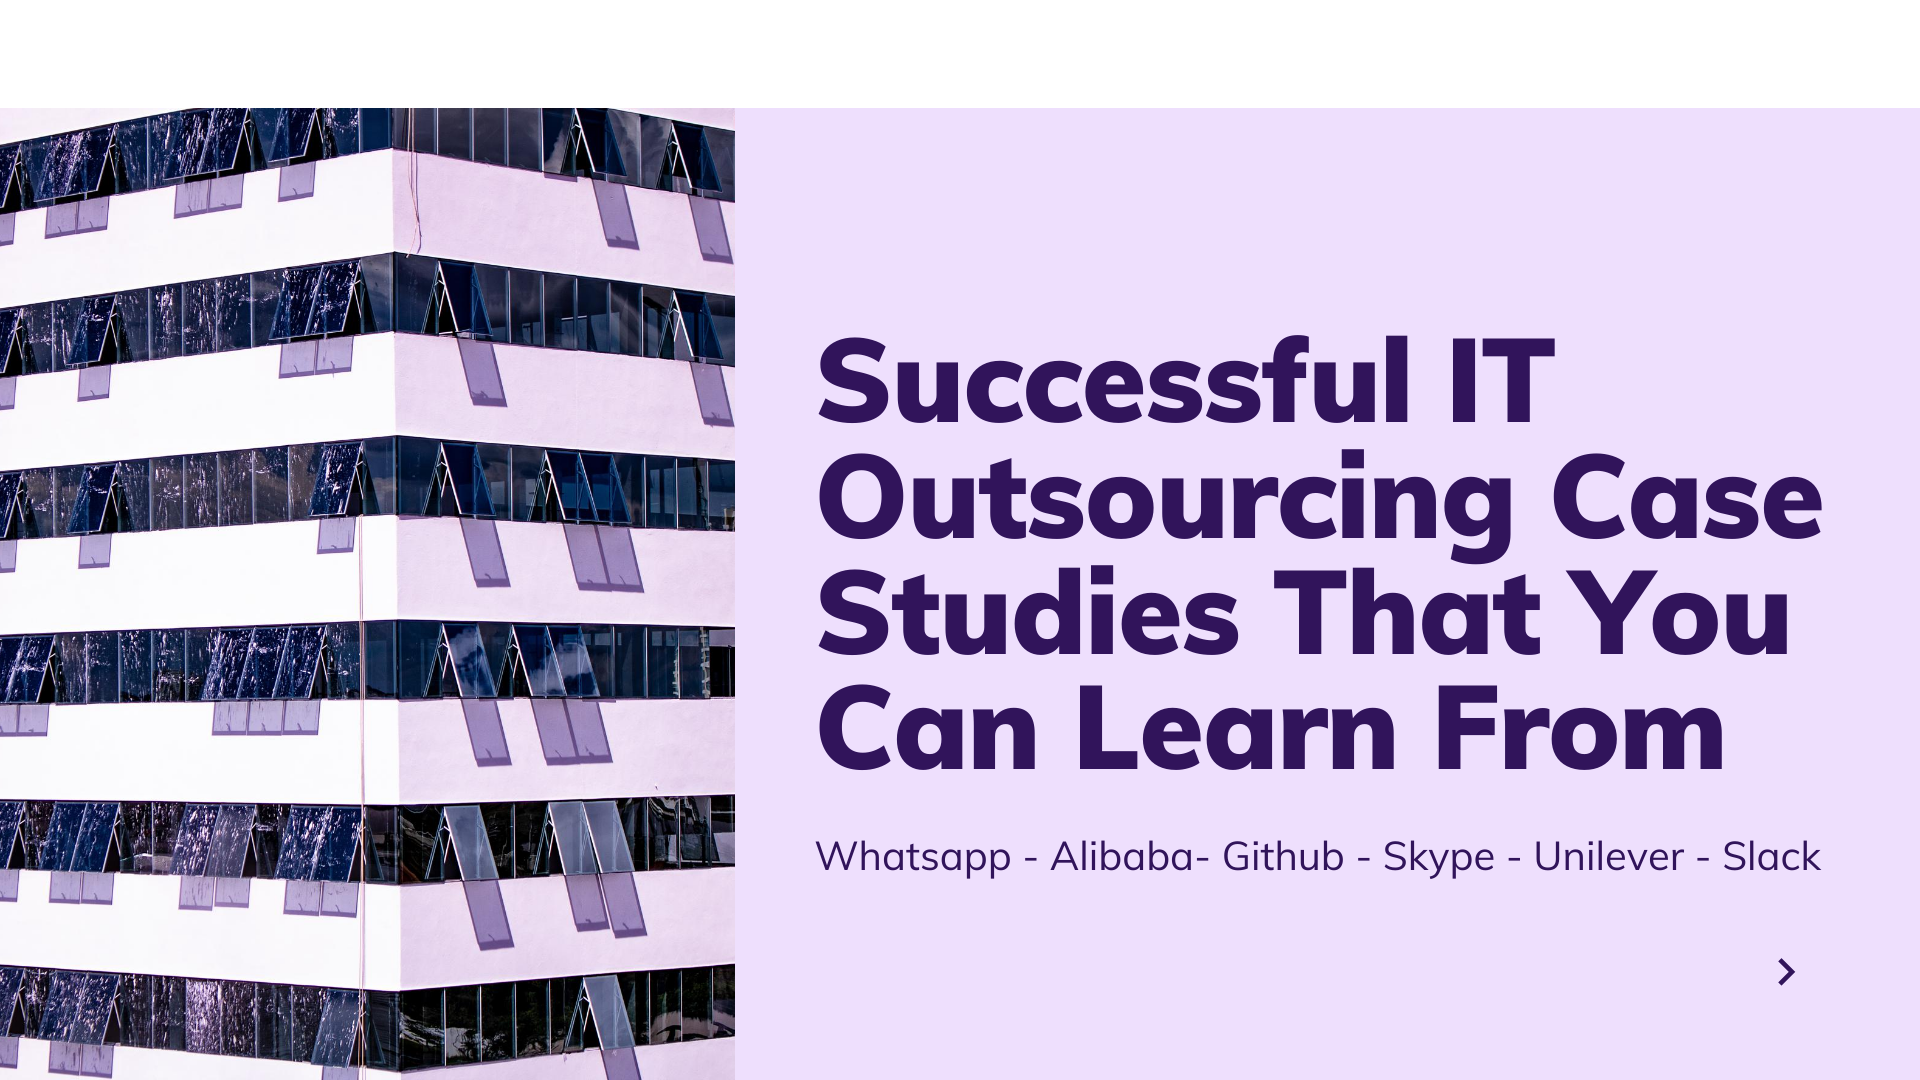 Successful Software Outsourcing Case Studies That You Can Learn From